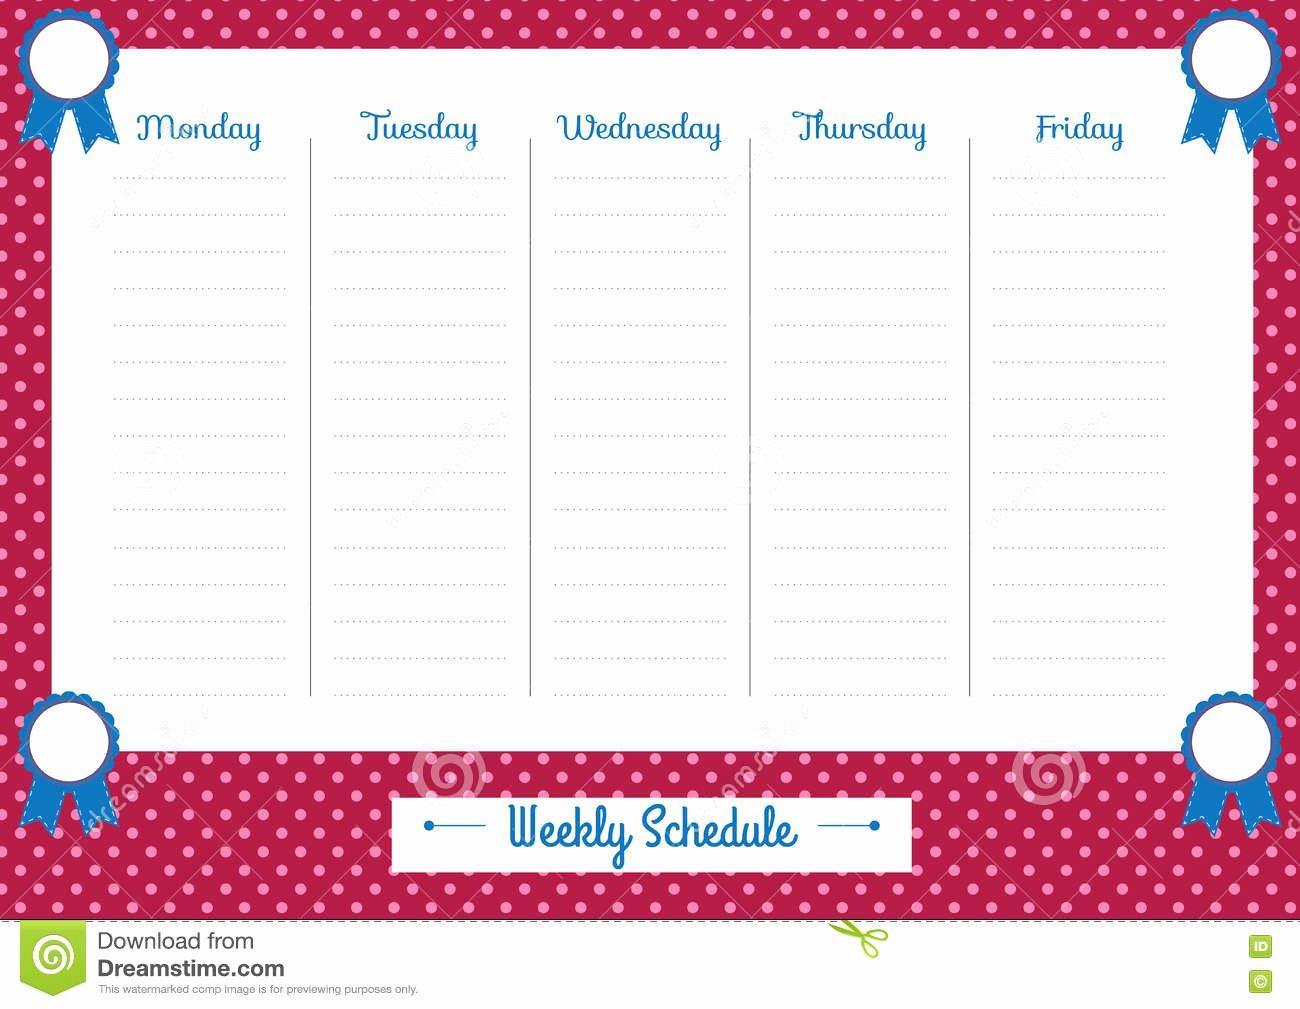 Cute Class Schedule Template Awesome Cute Weekly Planner Pink Dots Stock Vector Illustration